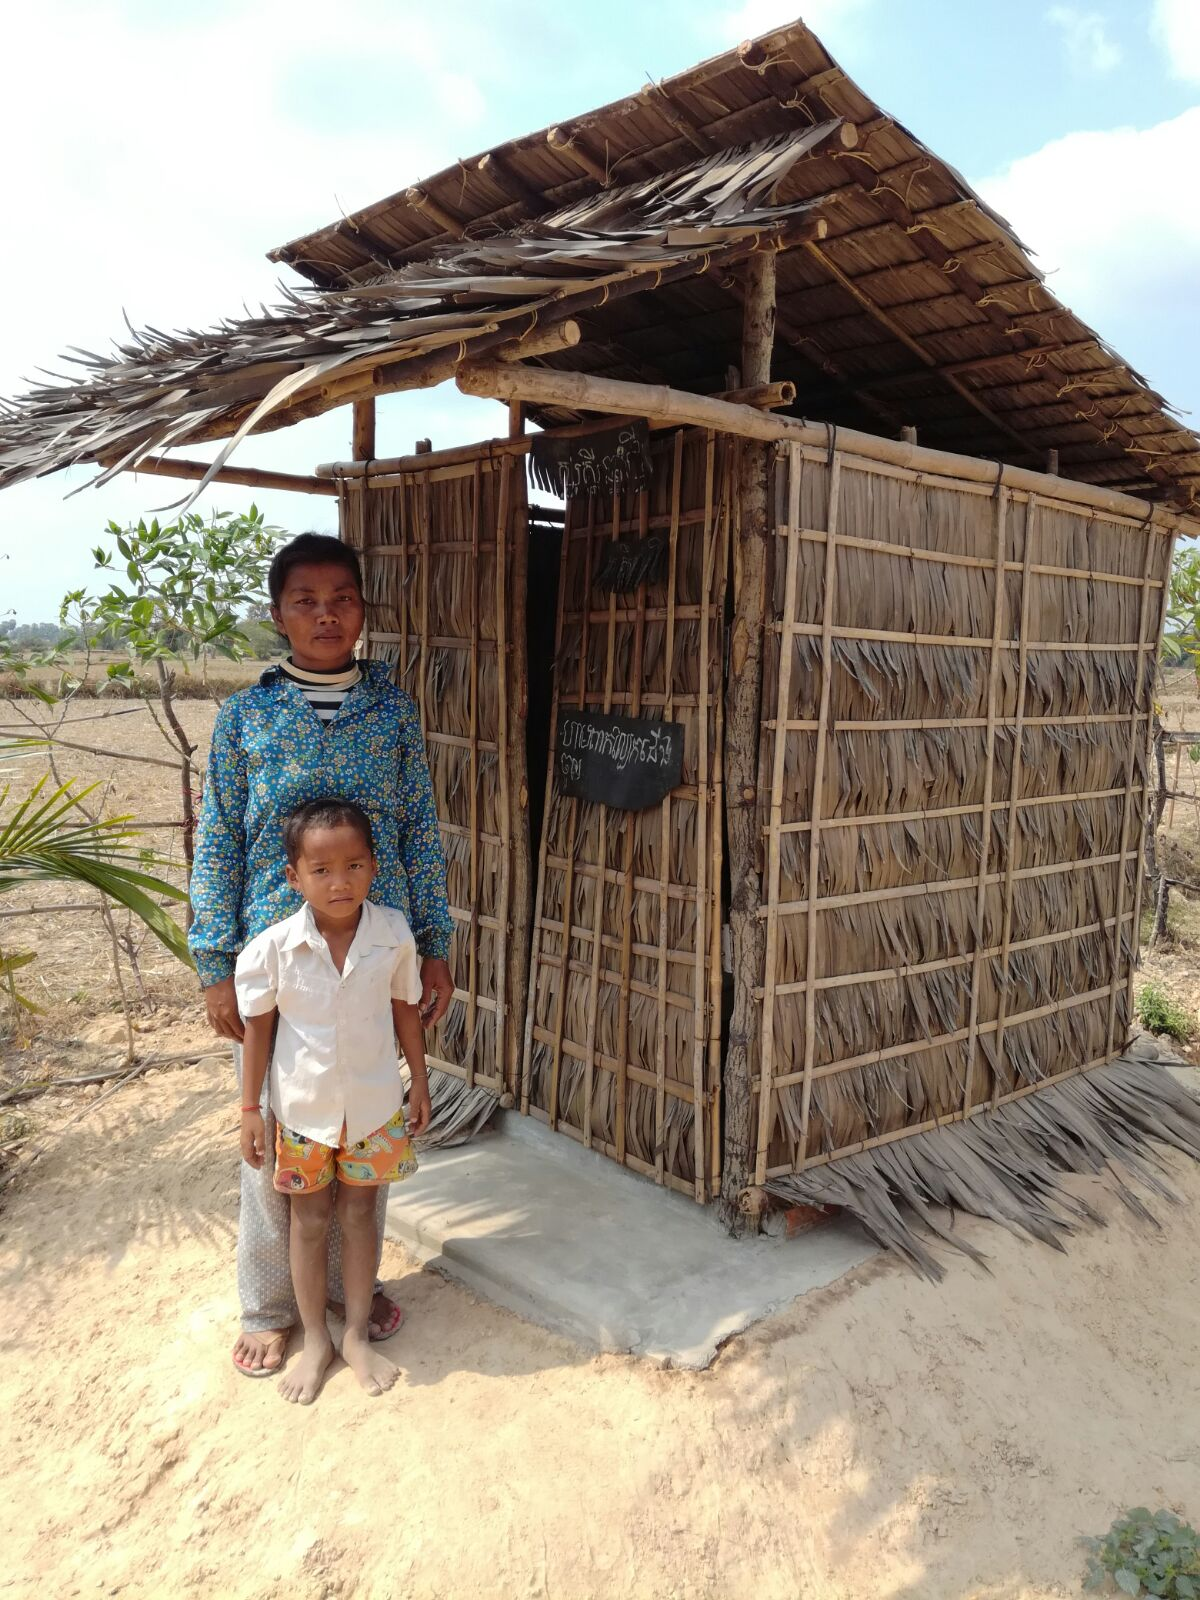 Hak Hun and Hak Nech pictured in front of their new toilet.